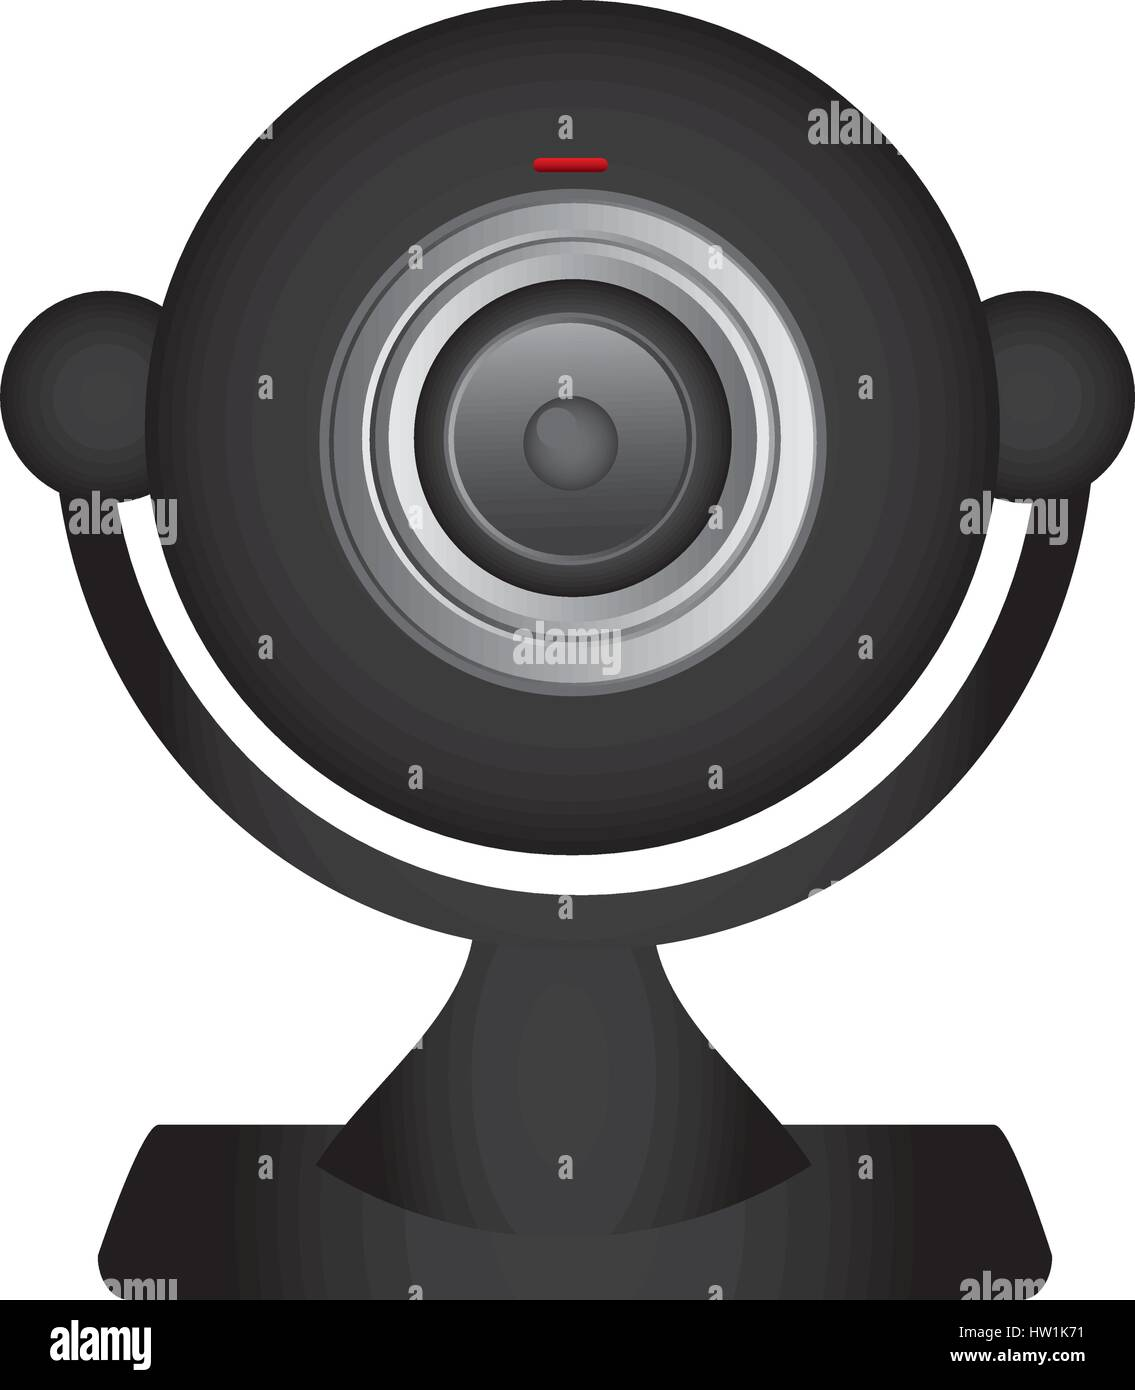 technology computer webcam icon - Stock Image